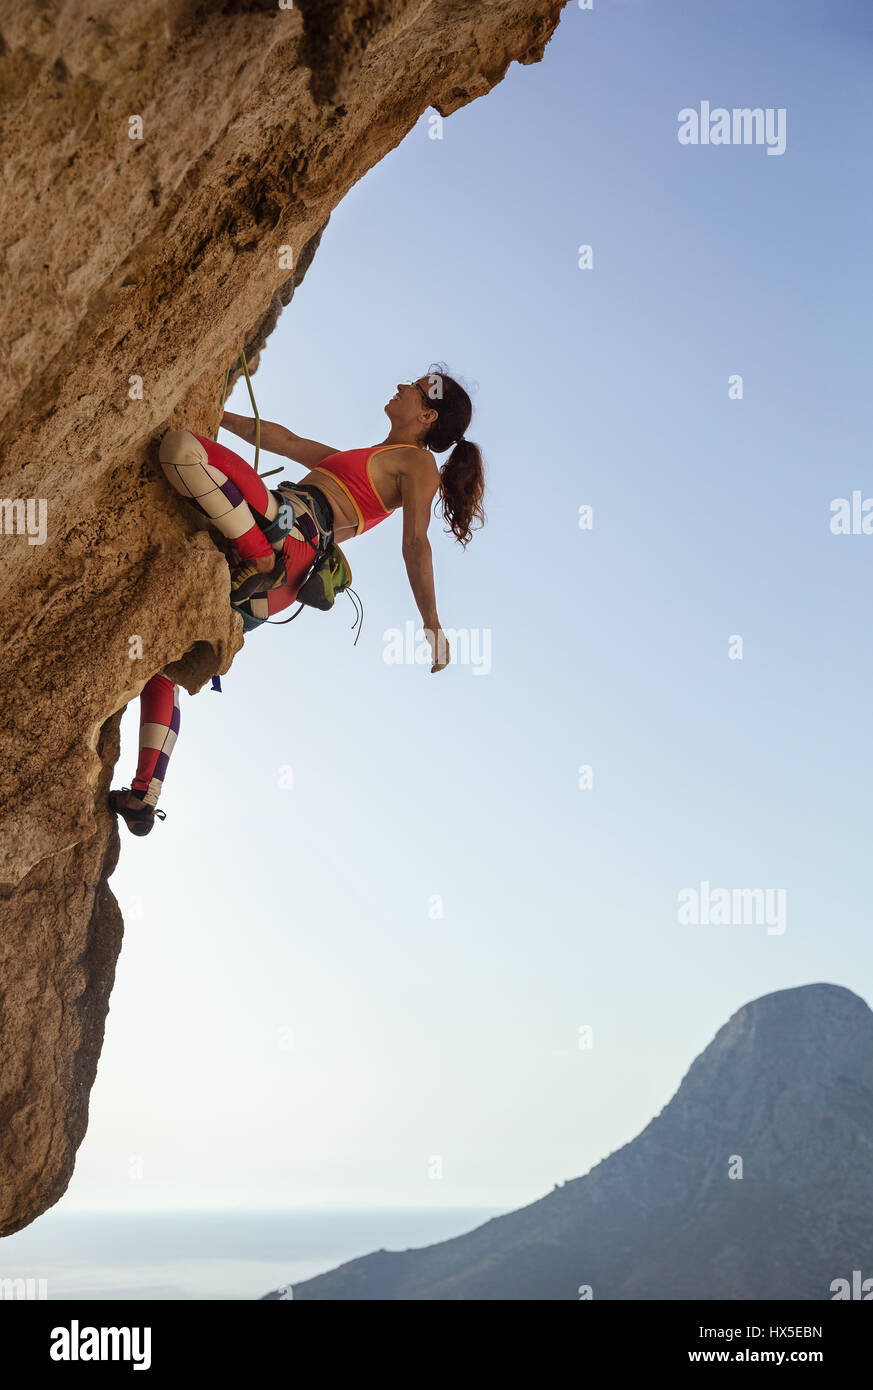 Female rock climber looking up at challenging route on cliff and smiling - Stock Image